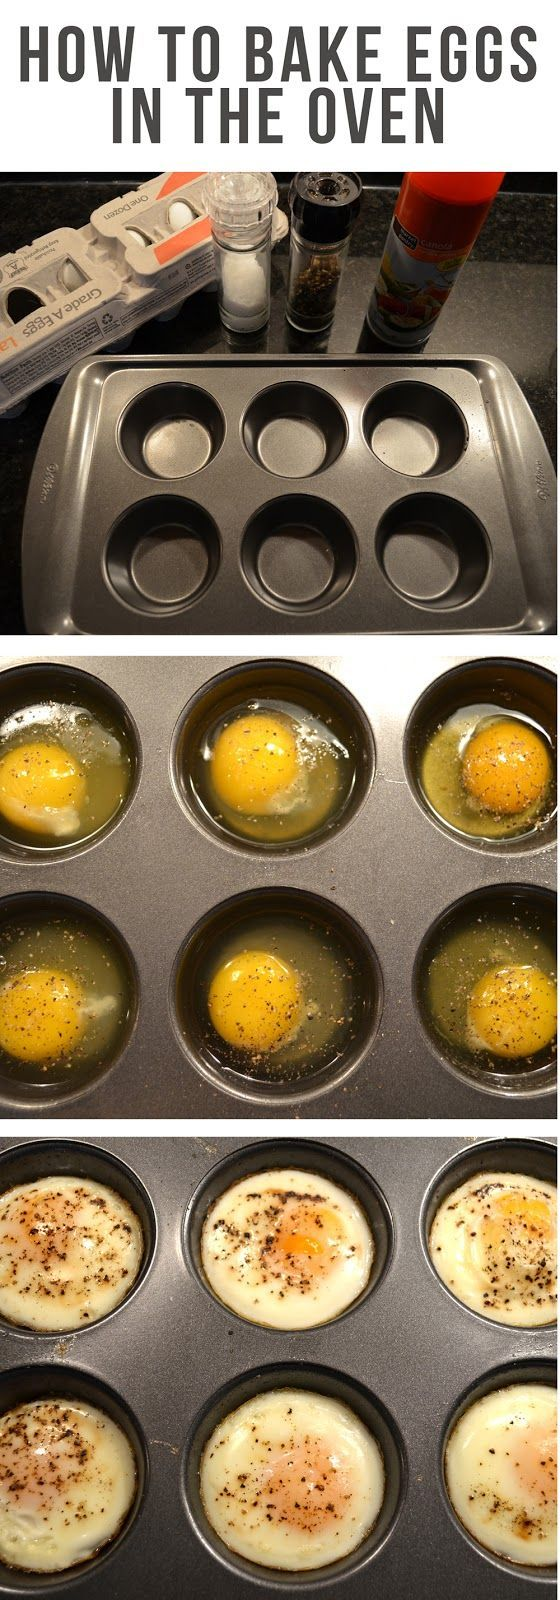 How To Bake Eggs In The Oven All You Have To Do Is Set Your Oven